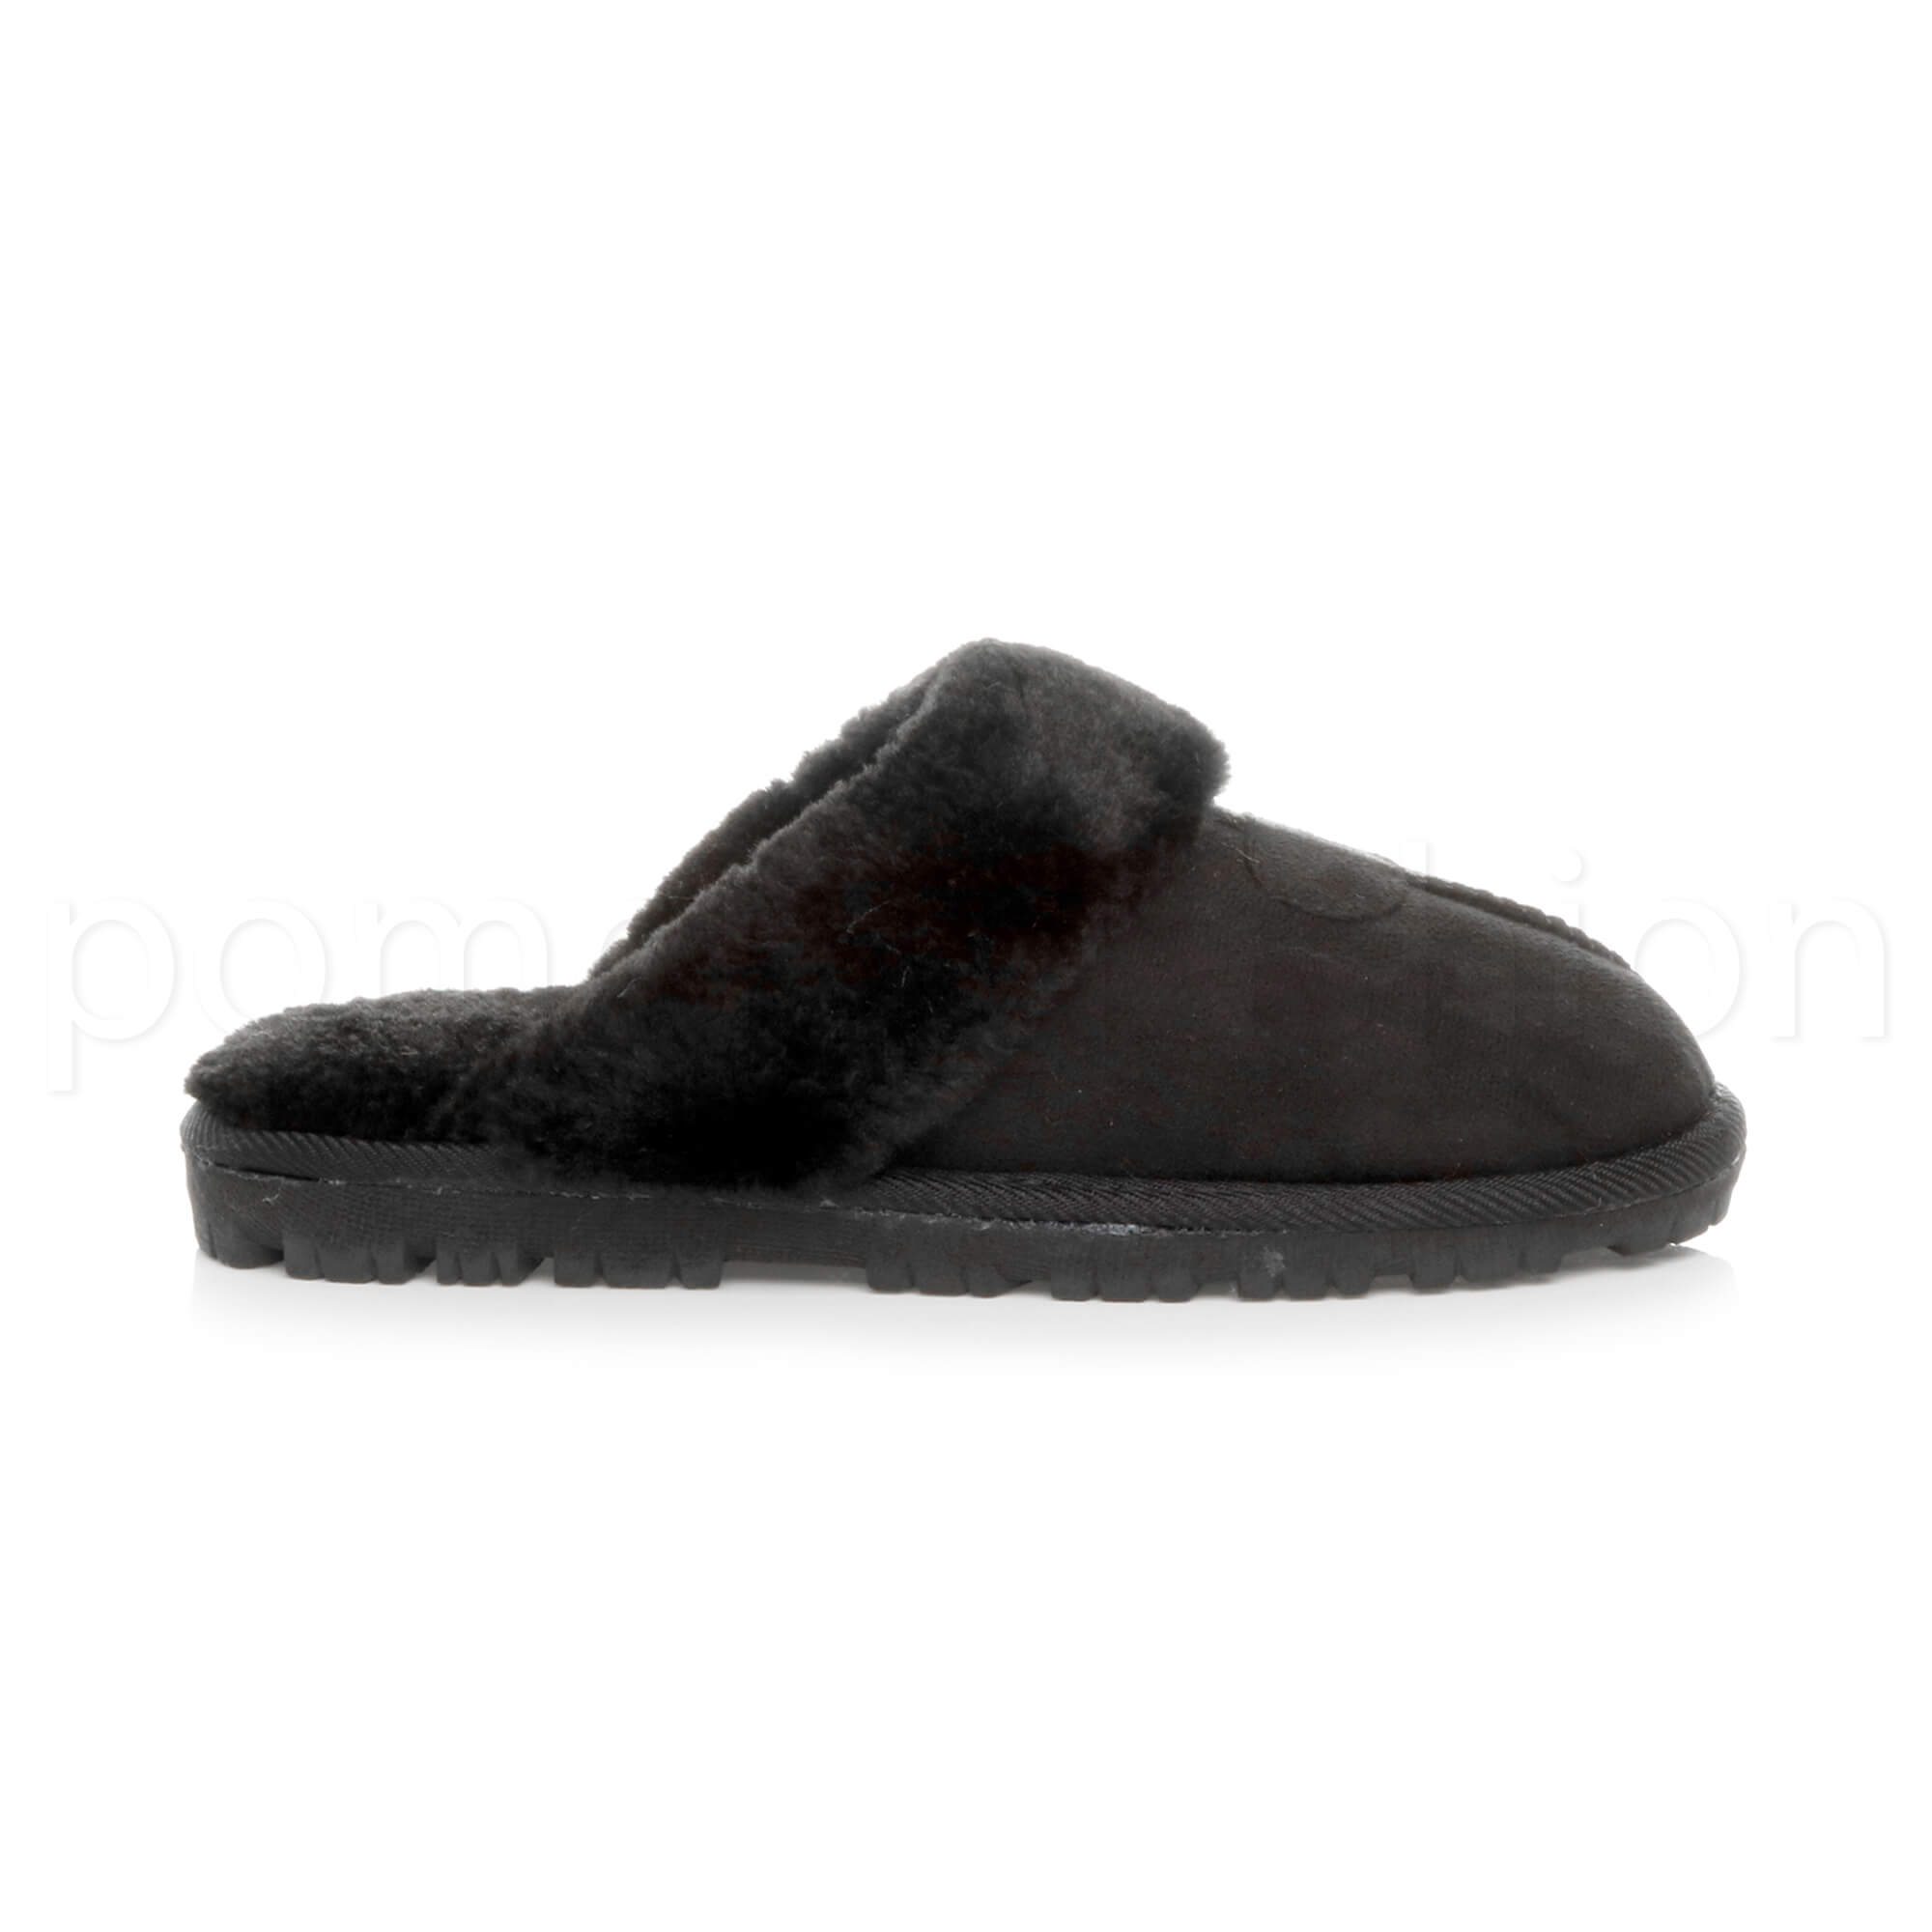 WOMENS-LADIES-FLAT-FUR-LINED-COMFORTABLE-WINTER-MULES-SLIPPERS-HOUSE-SHOES-SIZE thumbnail 17